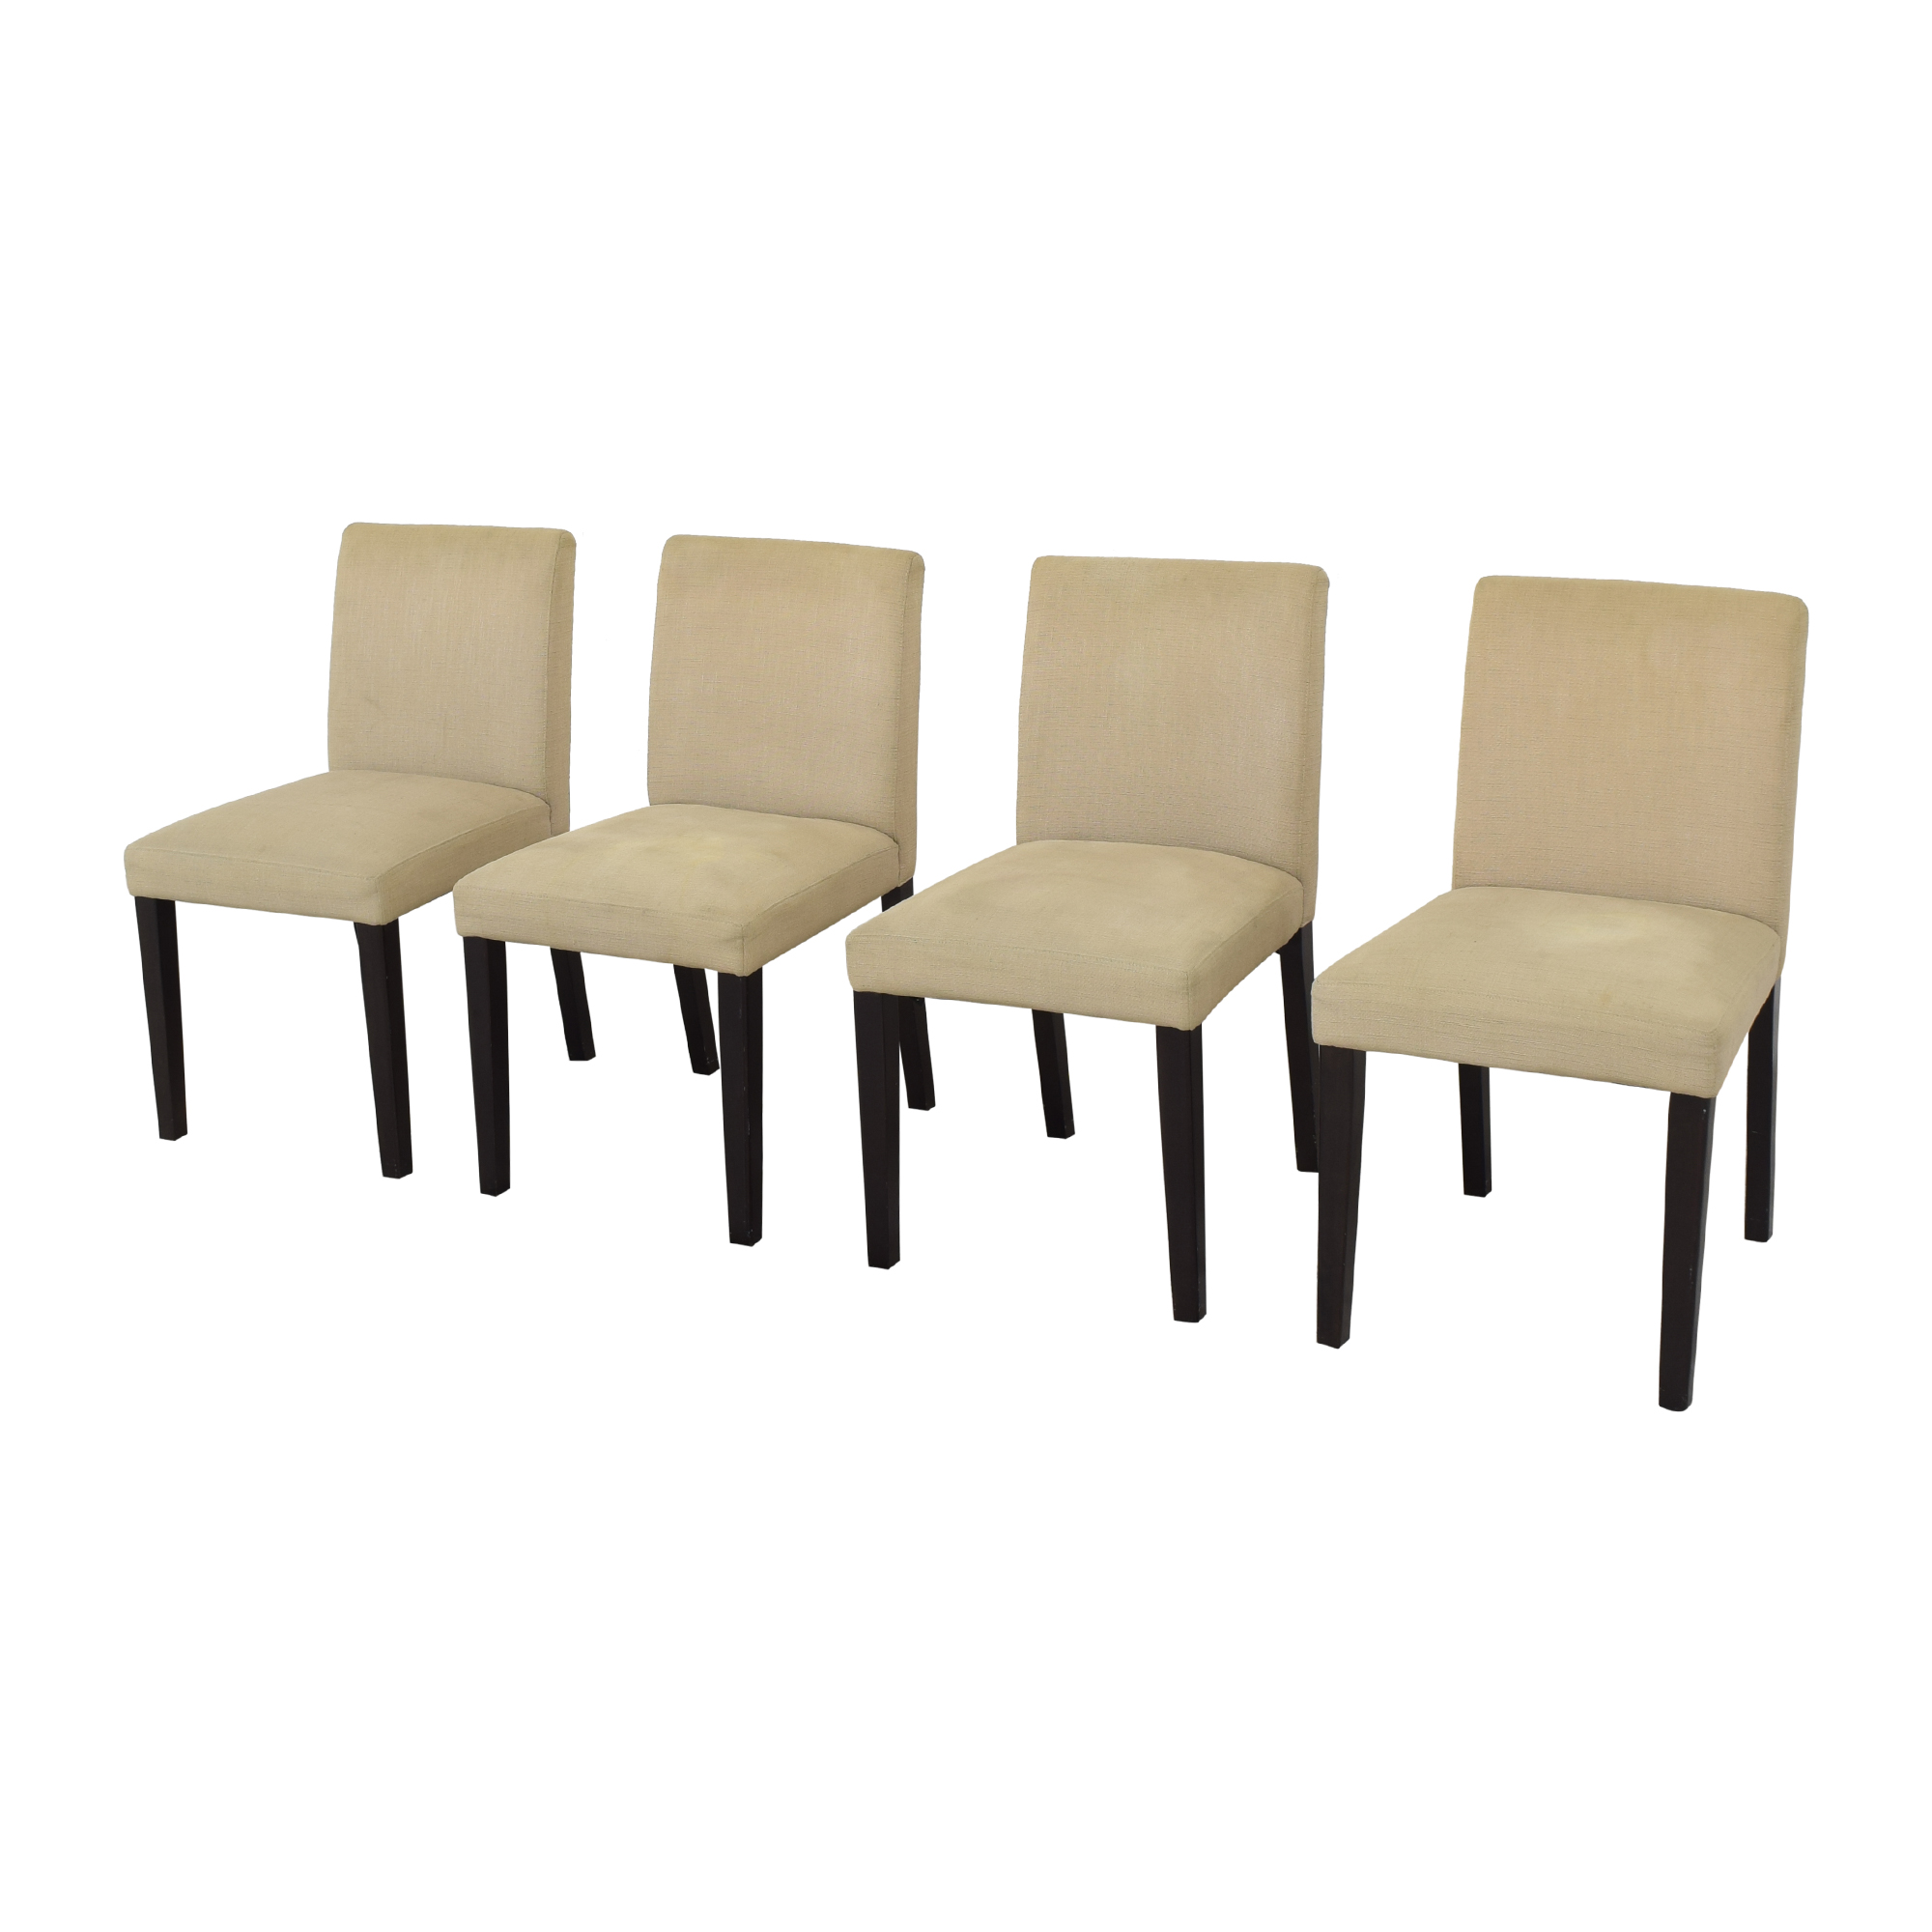 West Elm West Elm Porter Dining Chairs Chairs